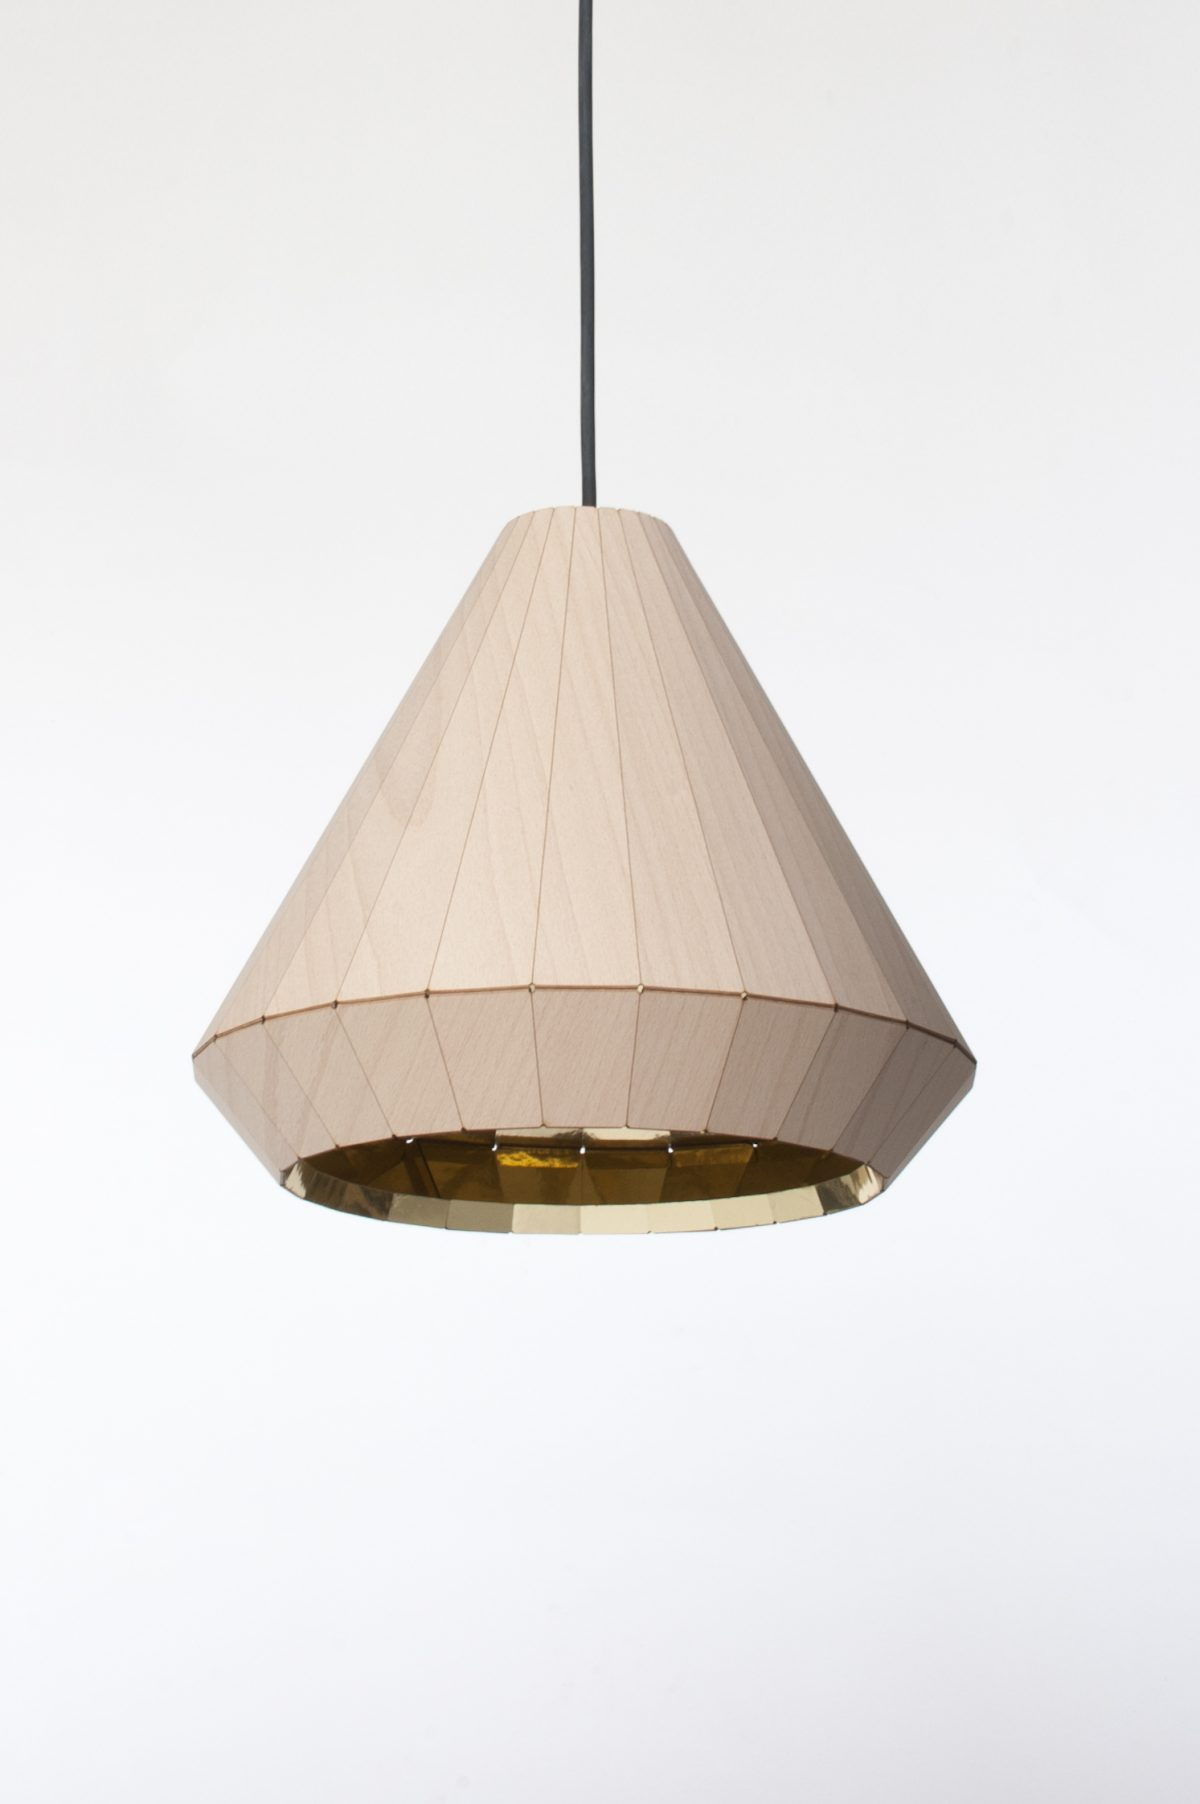 Lamp Wooden Light – David Derksen